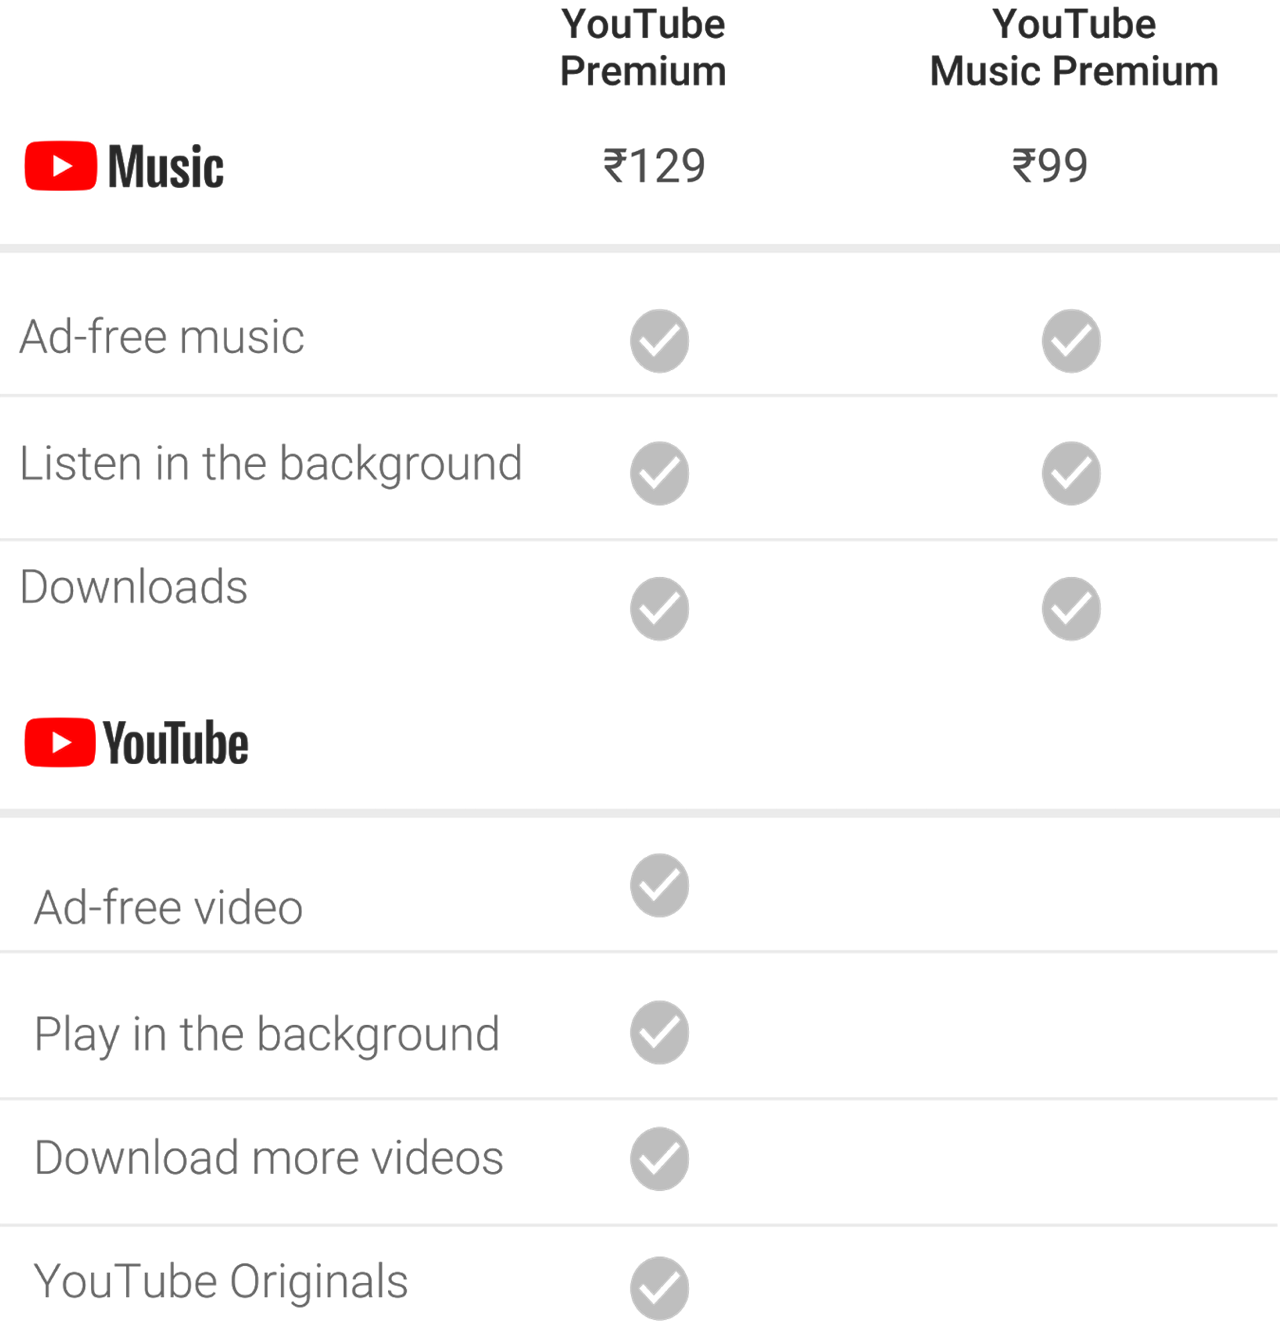 YouTube Premium price, features, countries where it's available and more